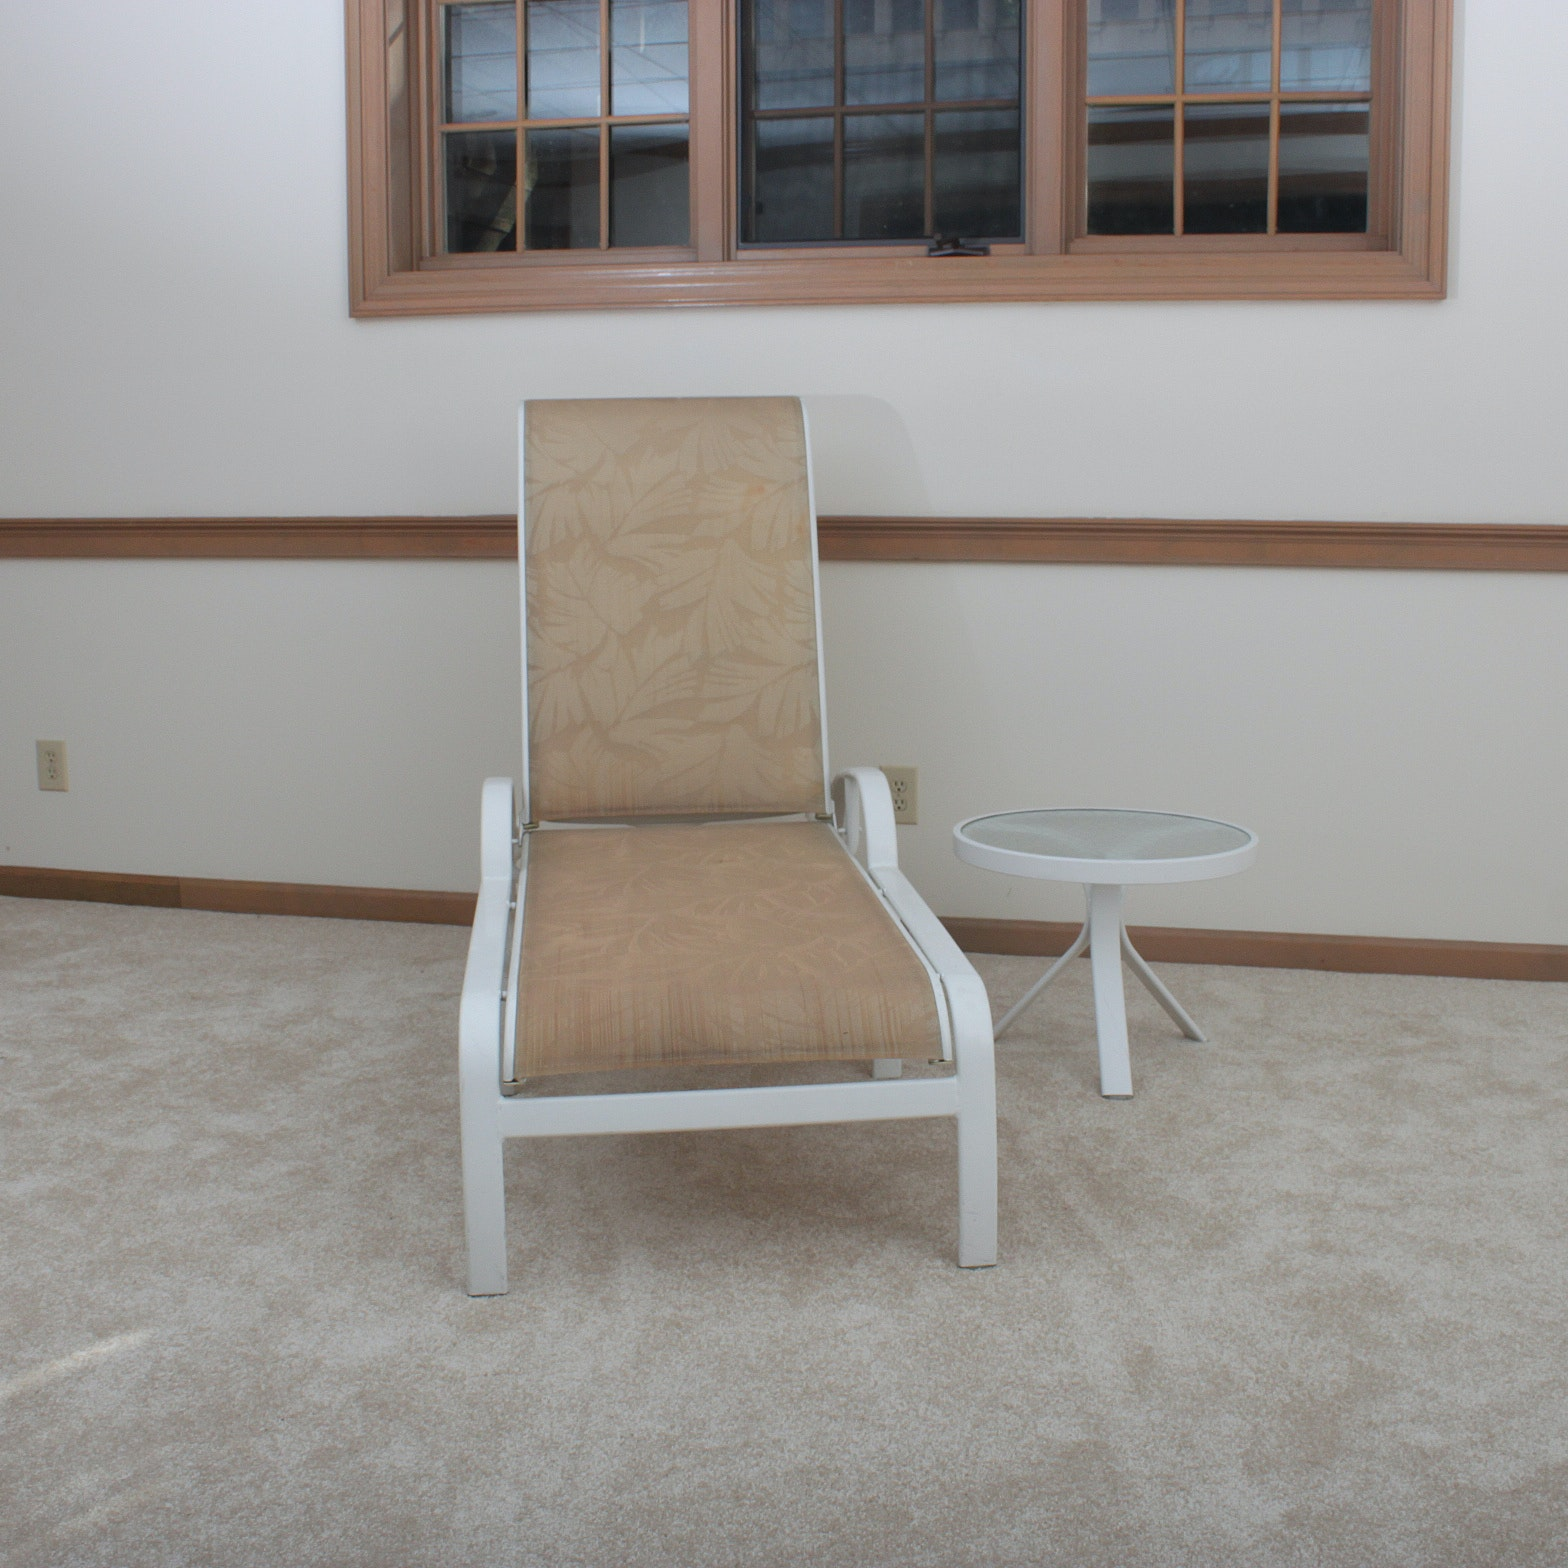 Tropitone Patio Lounge Chair and Side Table